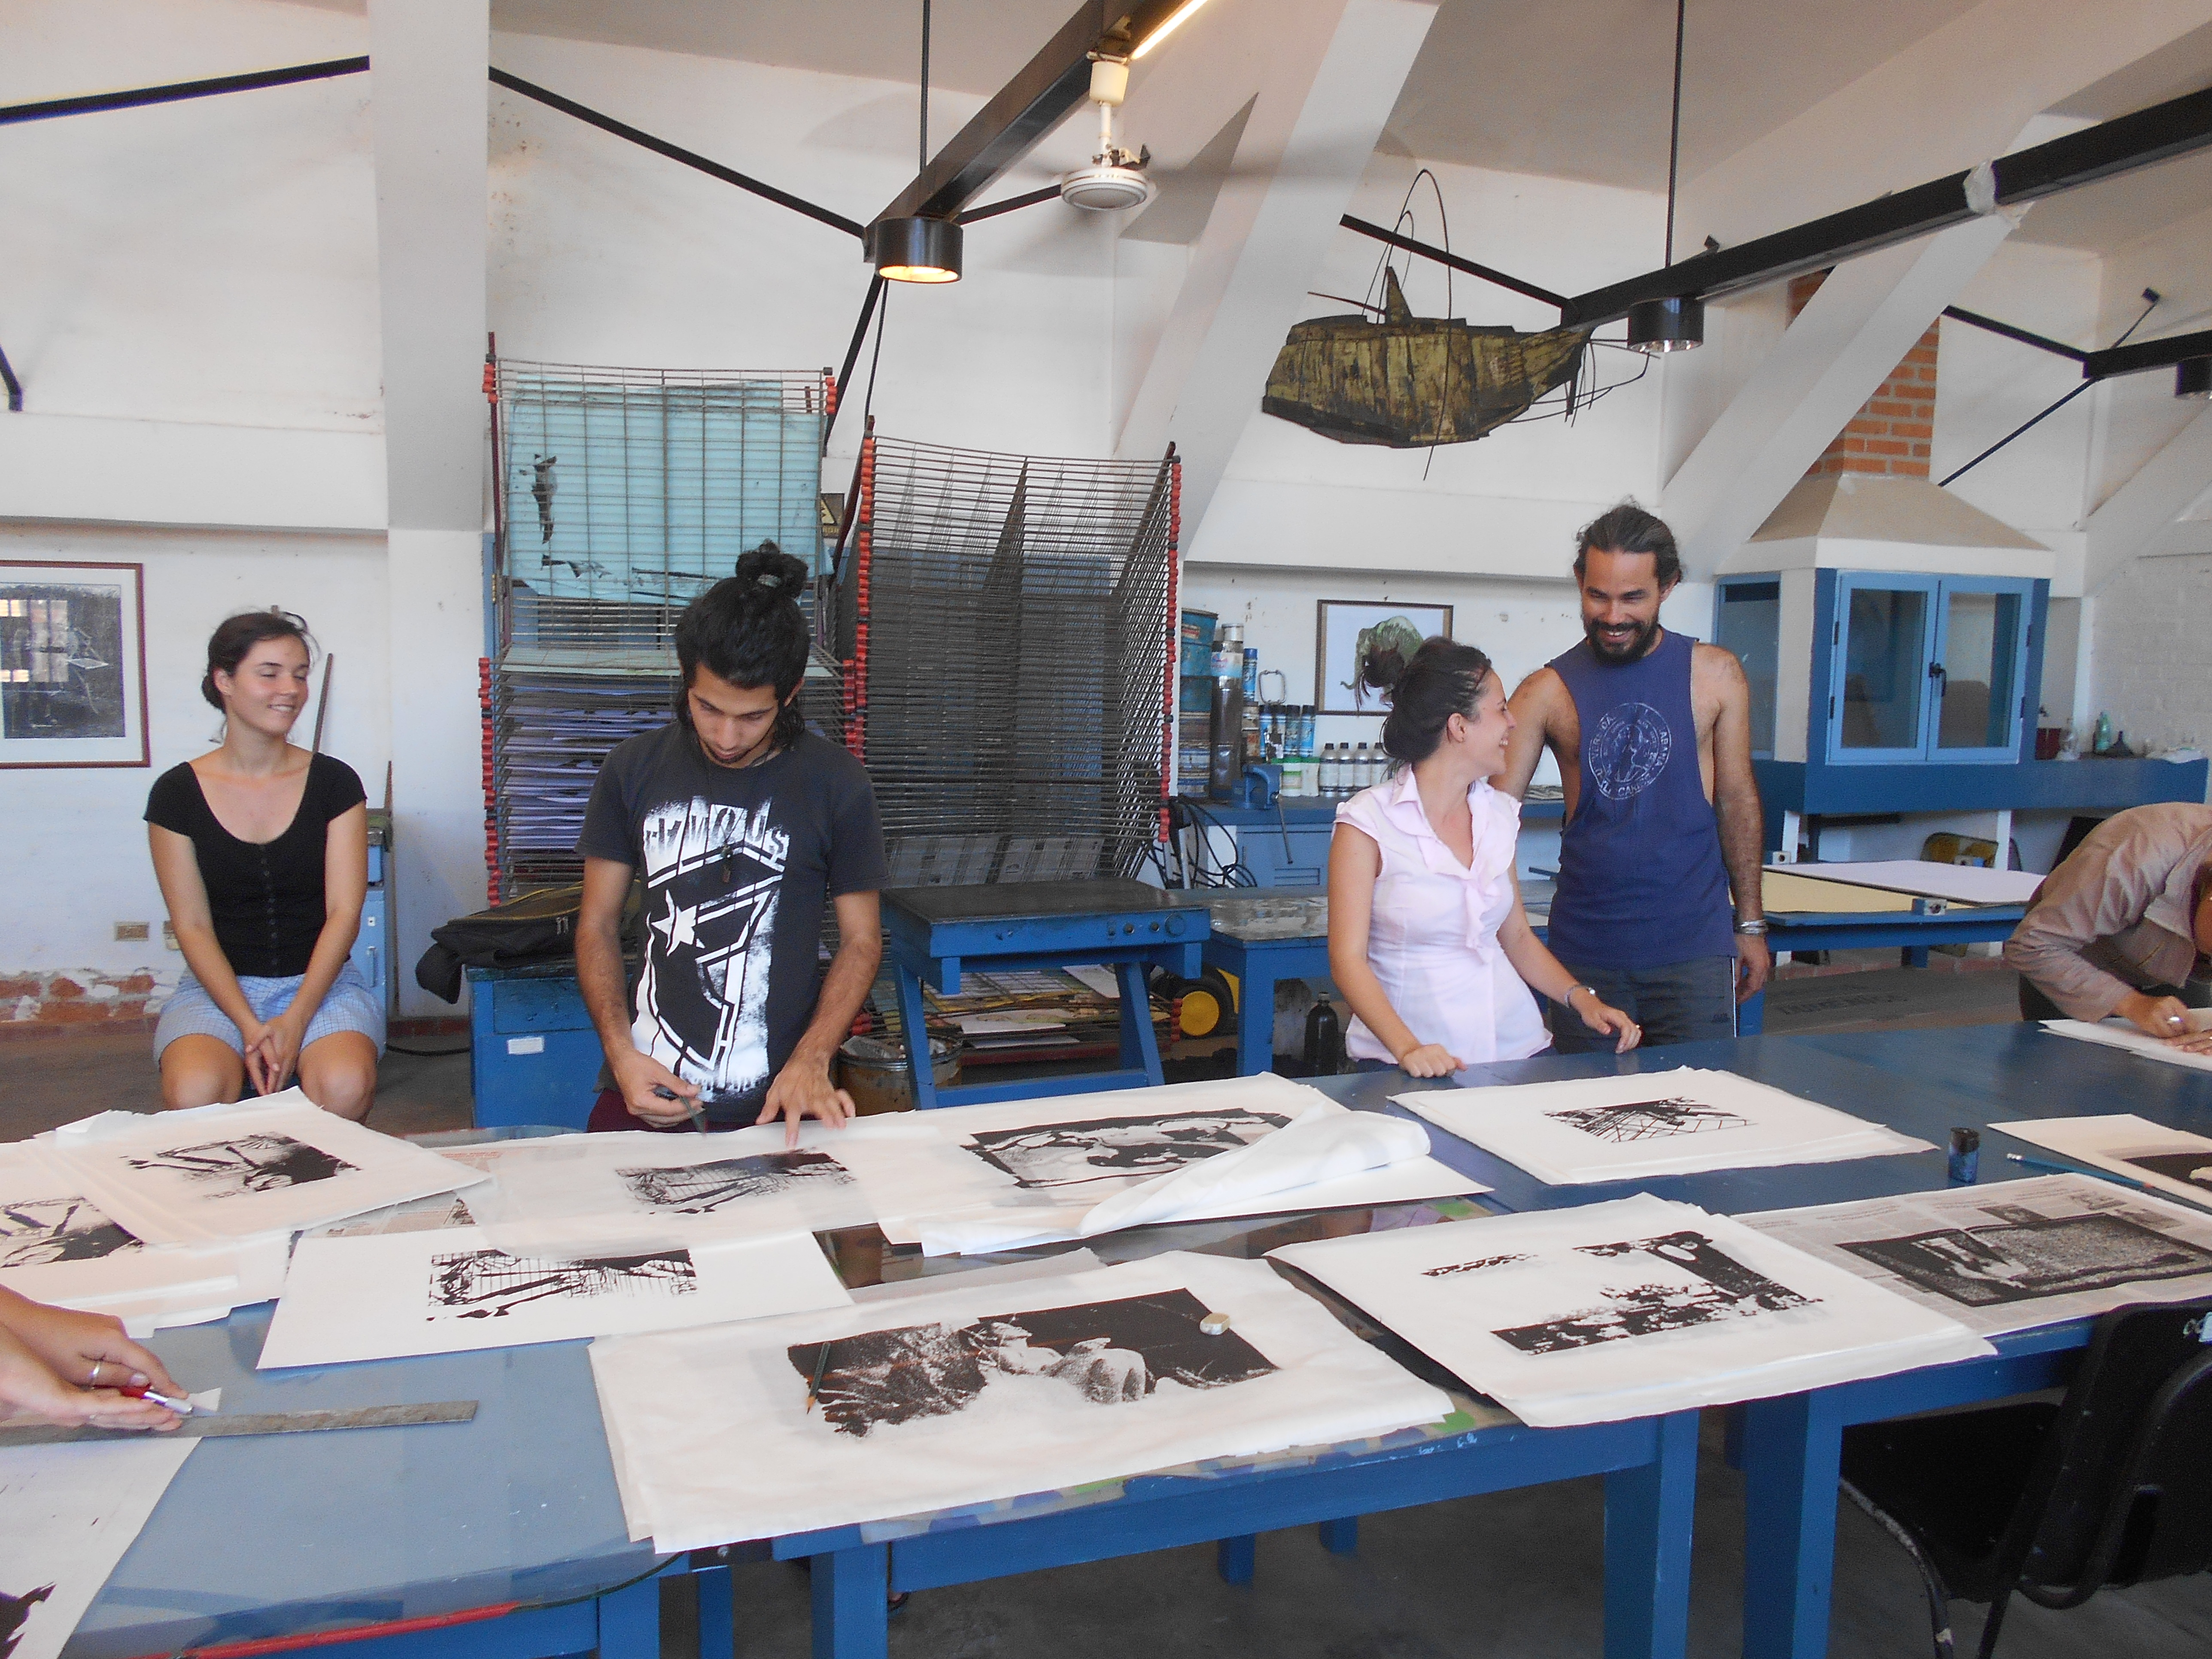 Students with finished artworks